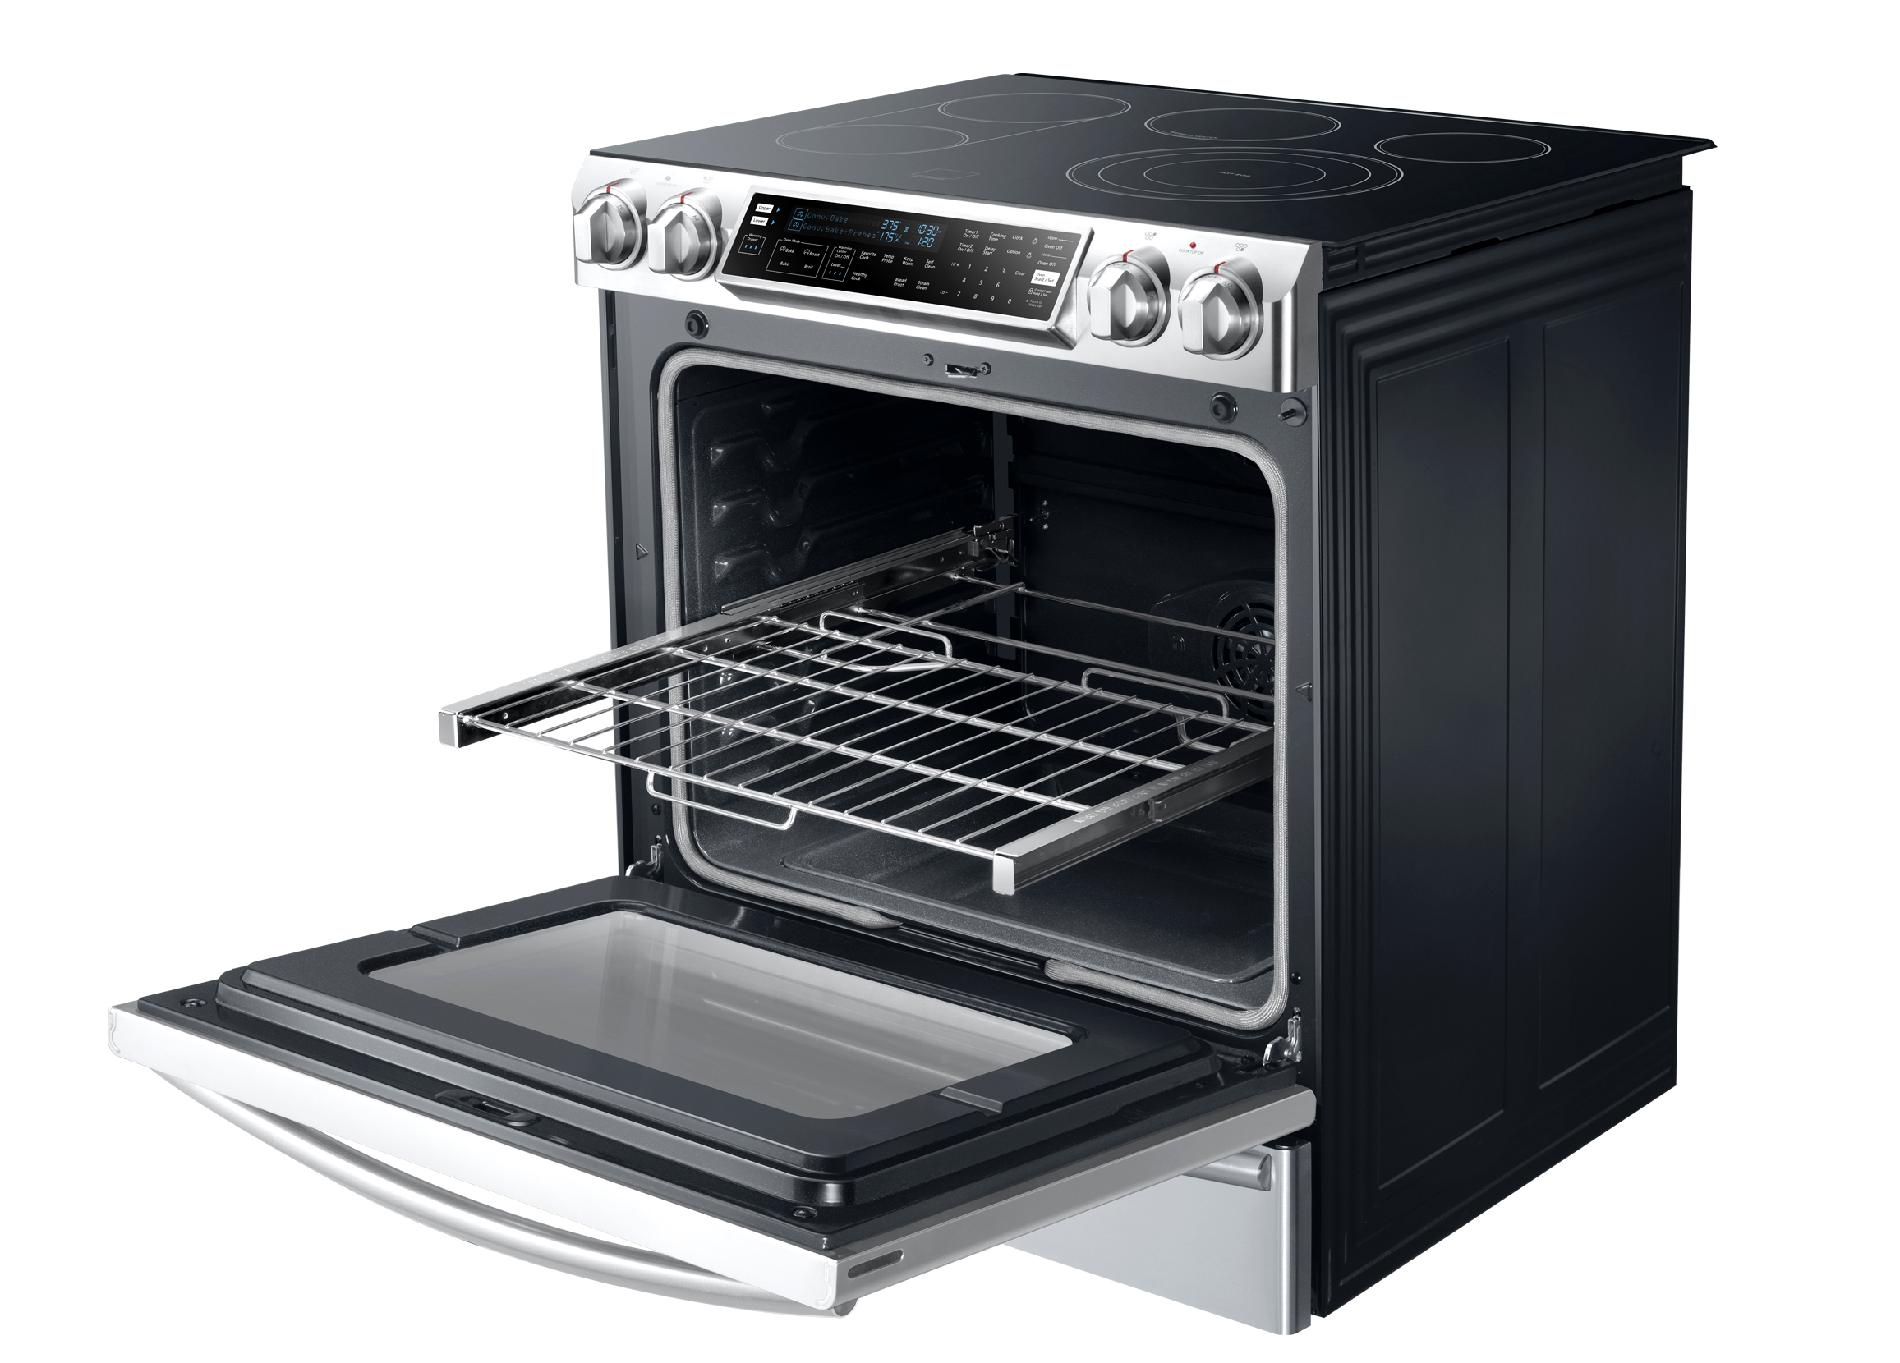 "Samsung 30"" Flex Duo™ Slide-In Electric Range w/ Convection Oven - Stainless Steel"